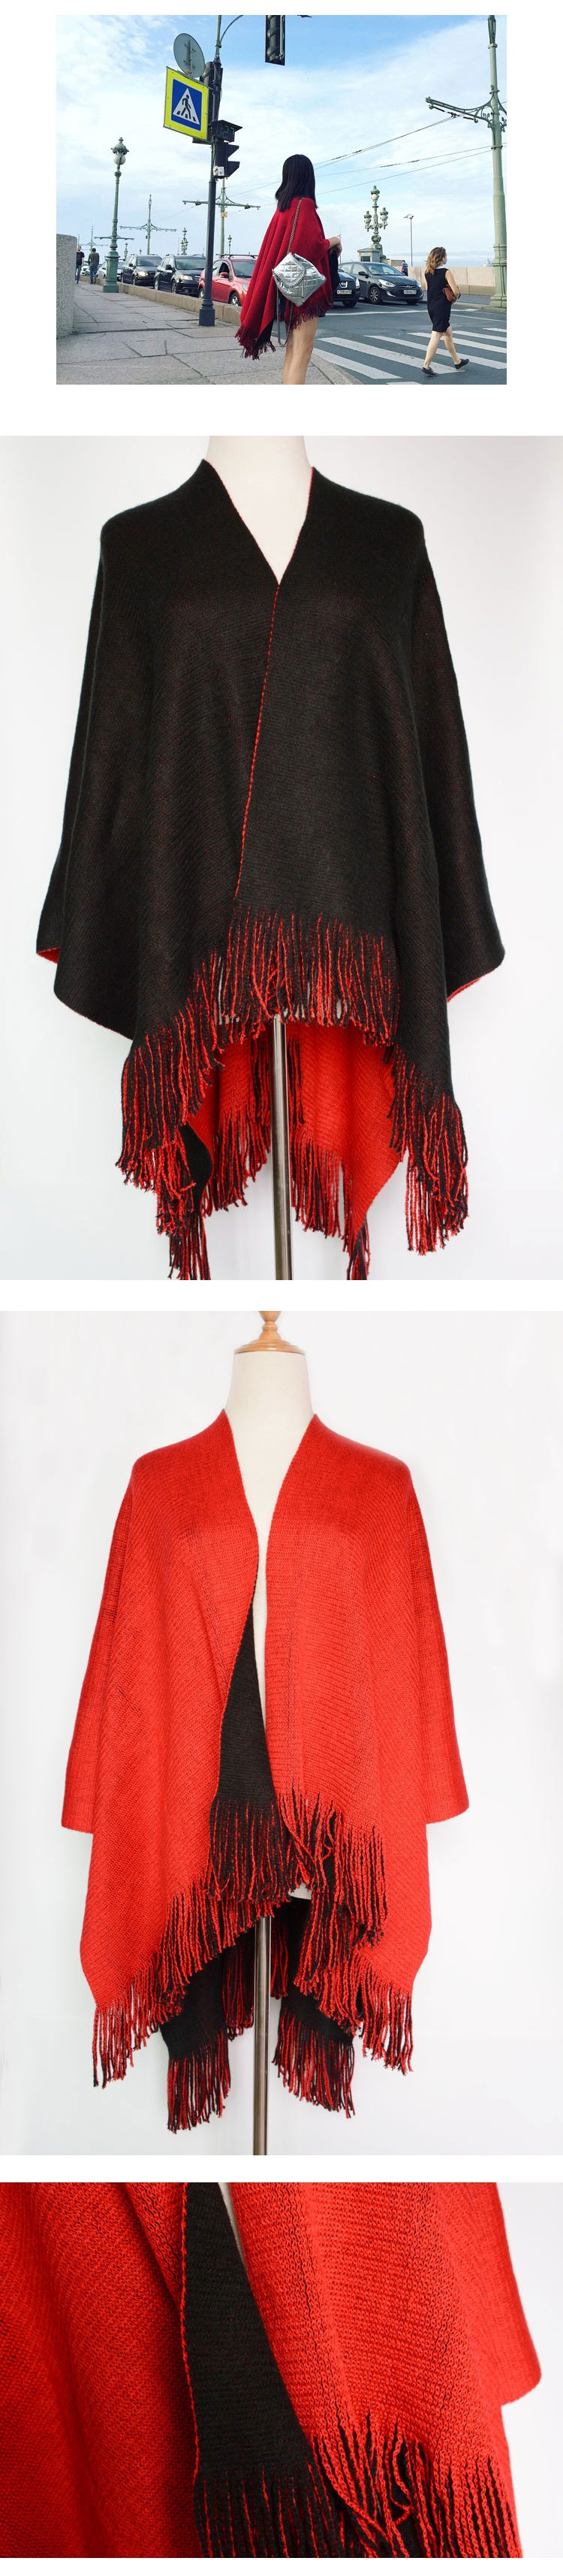 Luxury Brand Women Shawl Winter Fashion Hot Scarf For Womens Large Tassel Woolen Black And Red Dual Purpose British Shawl